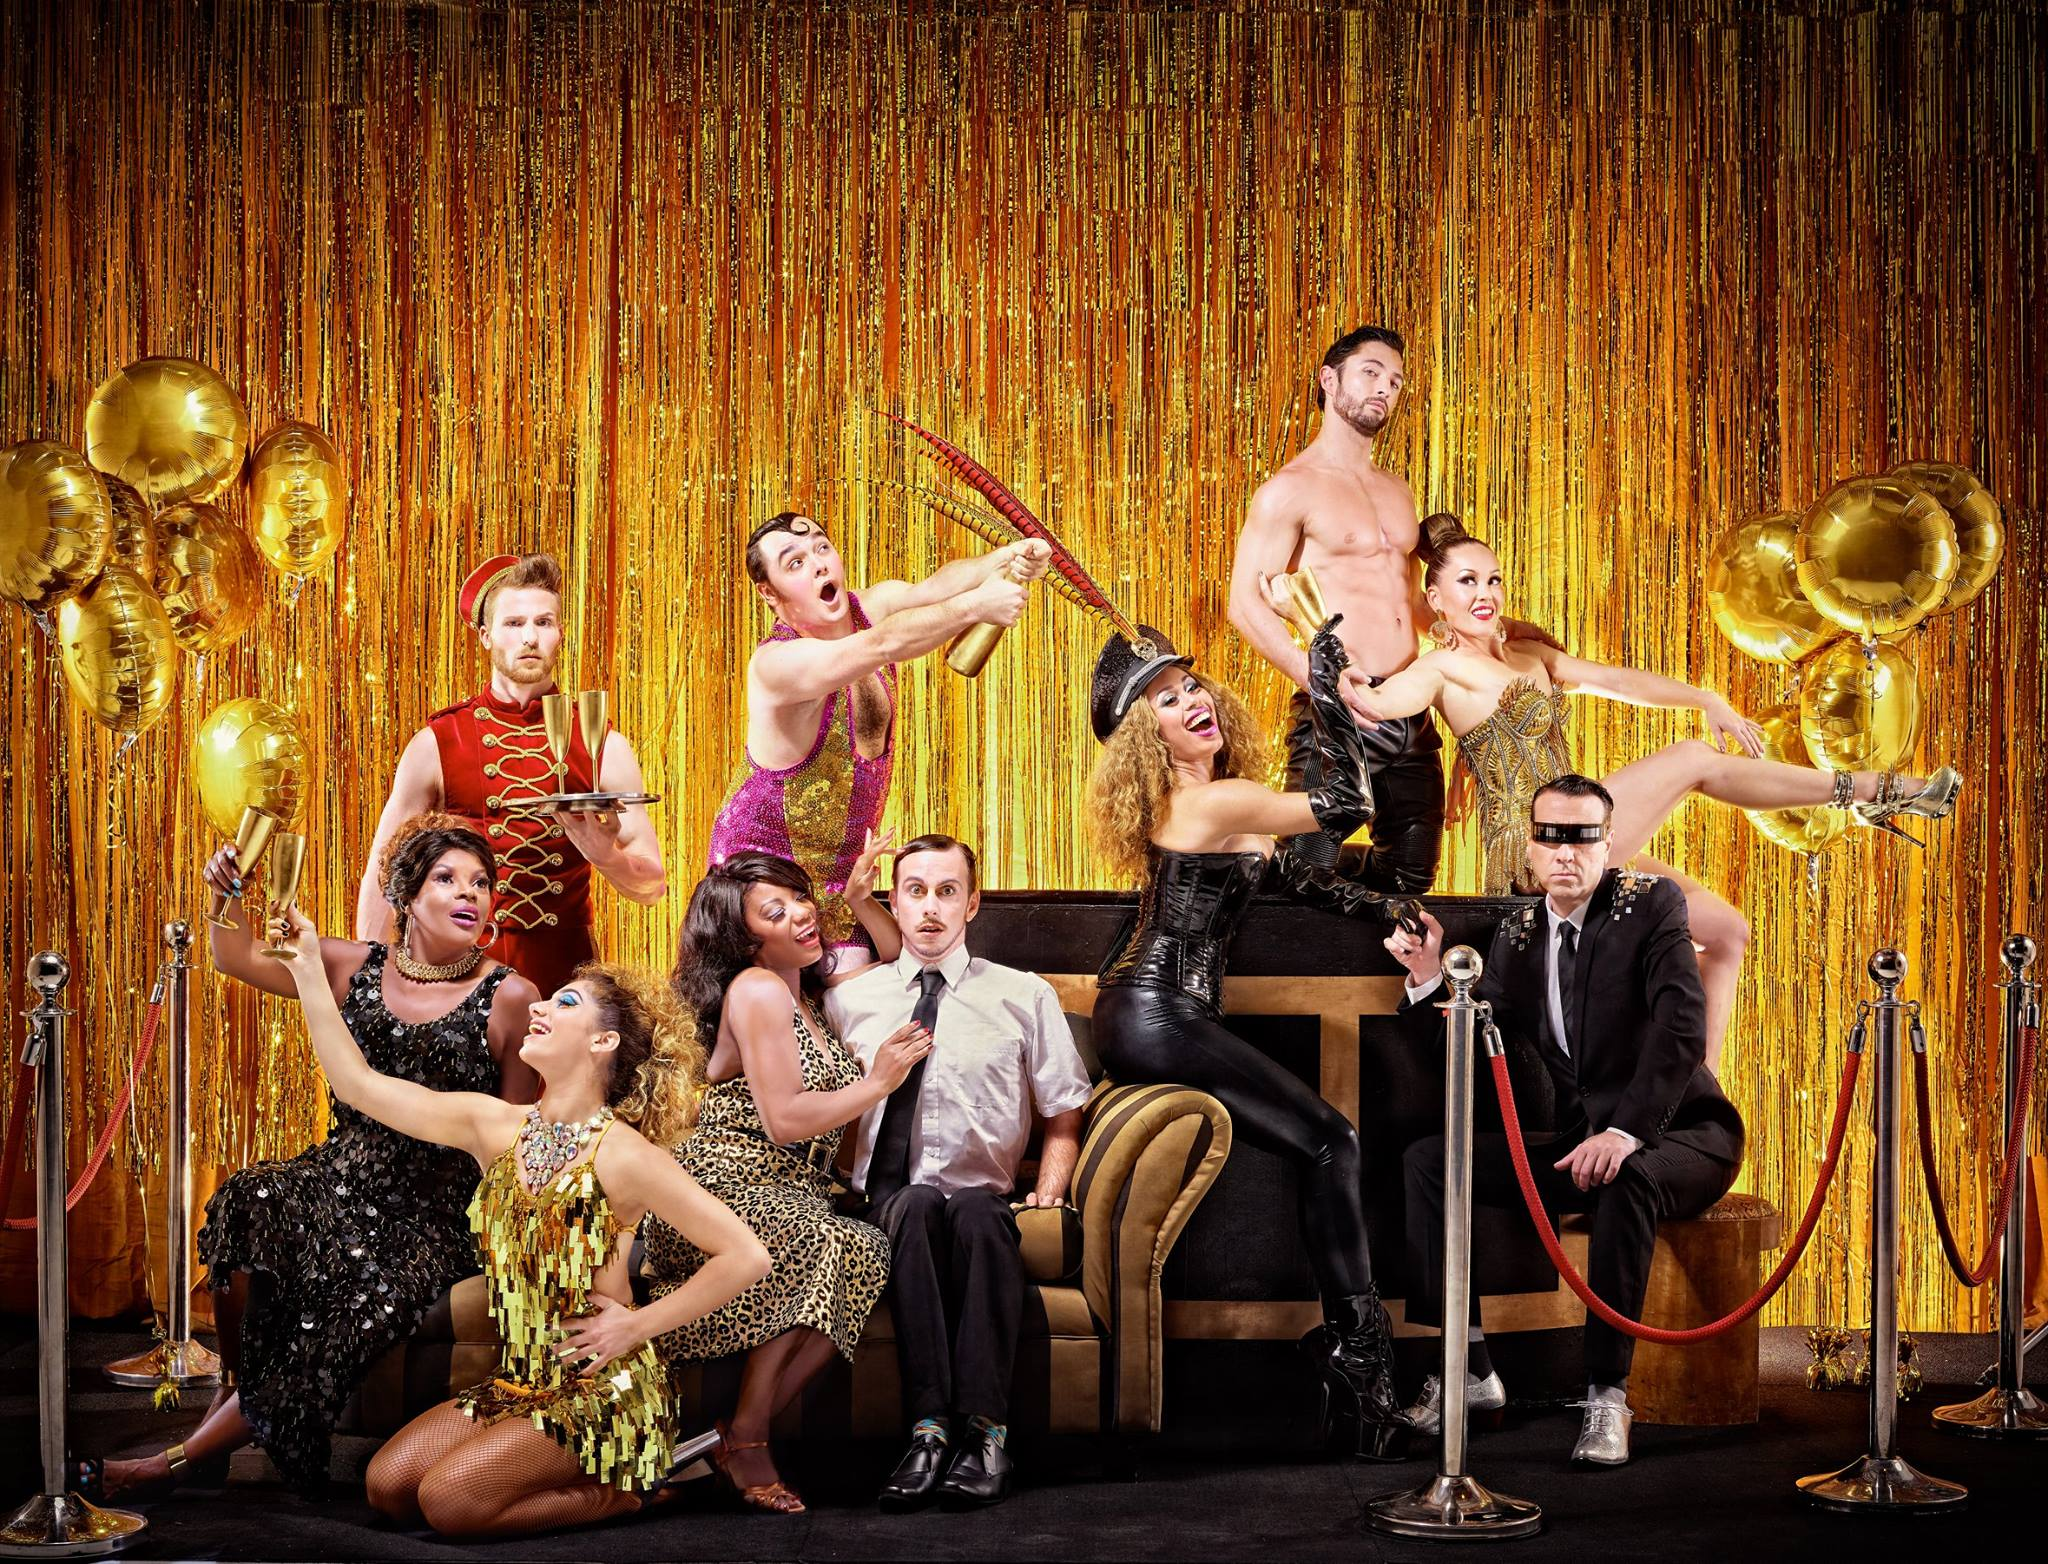 Tableau of people in cabaret costume holding instruments in front of a gold curtain